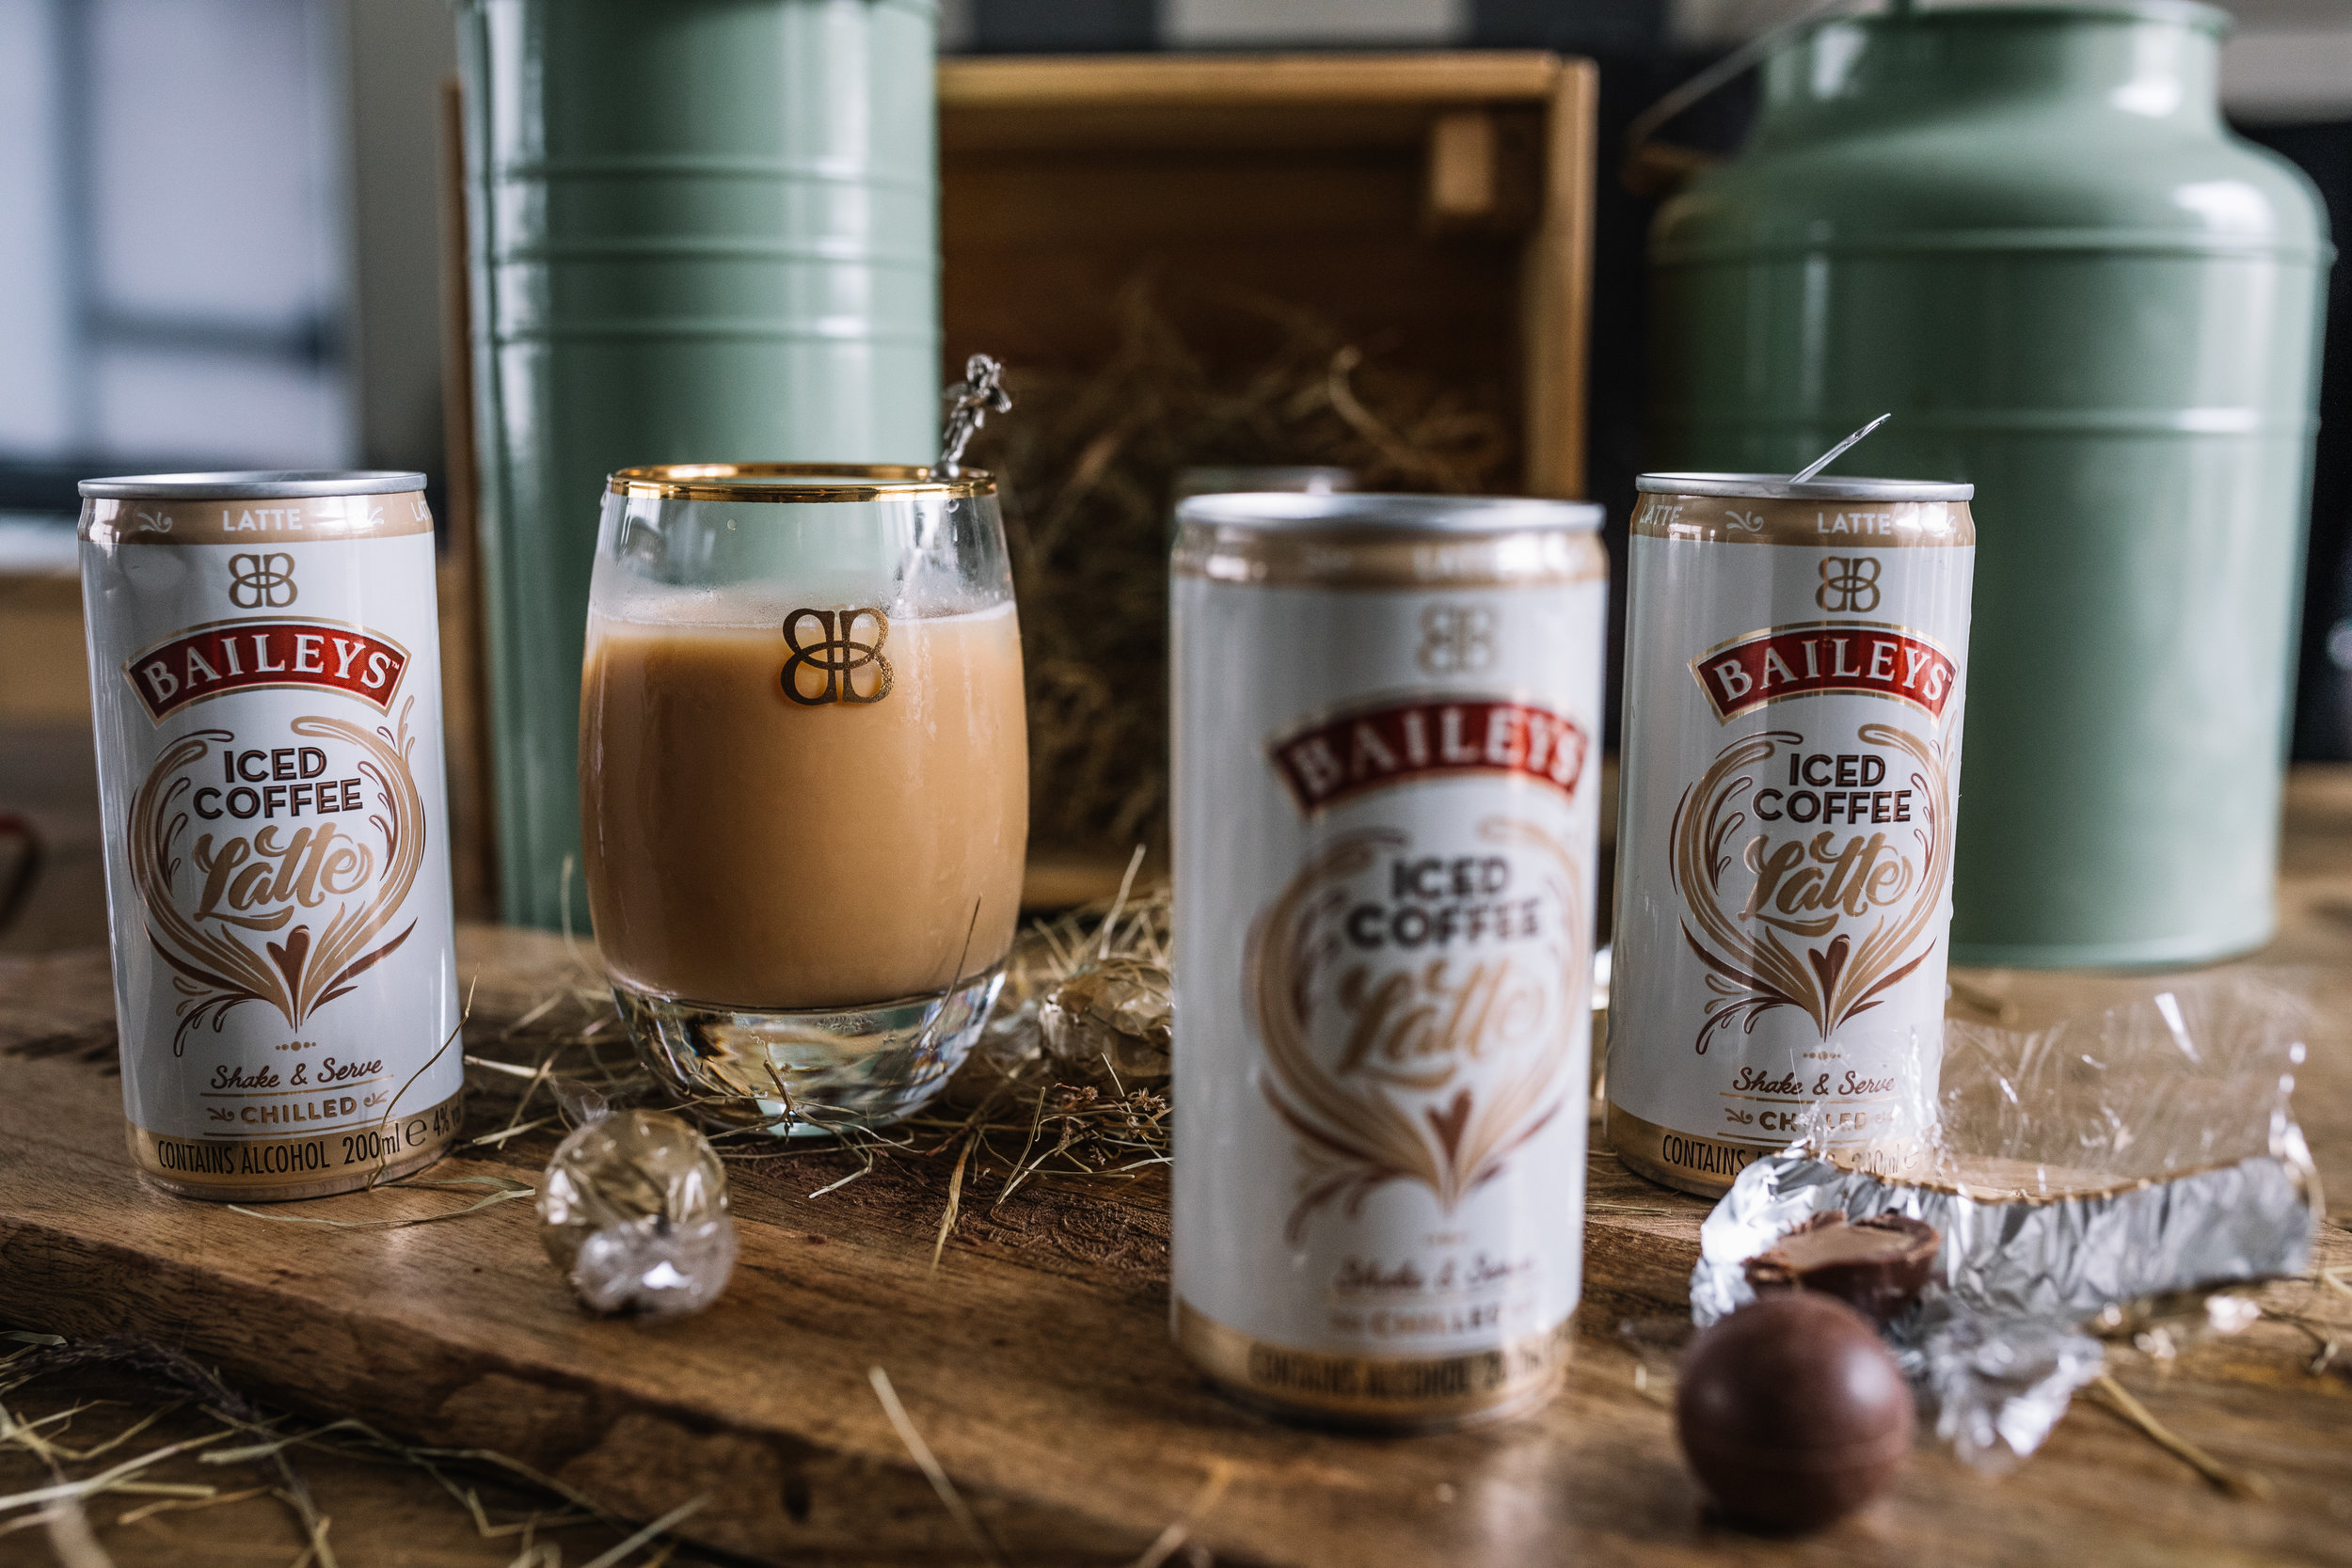 BAILEYS ICED COFFEE9.jpg